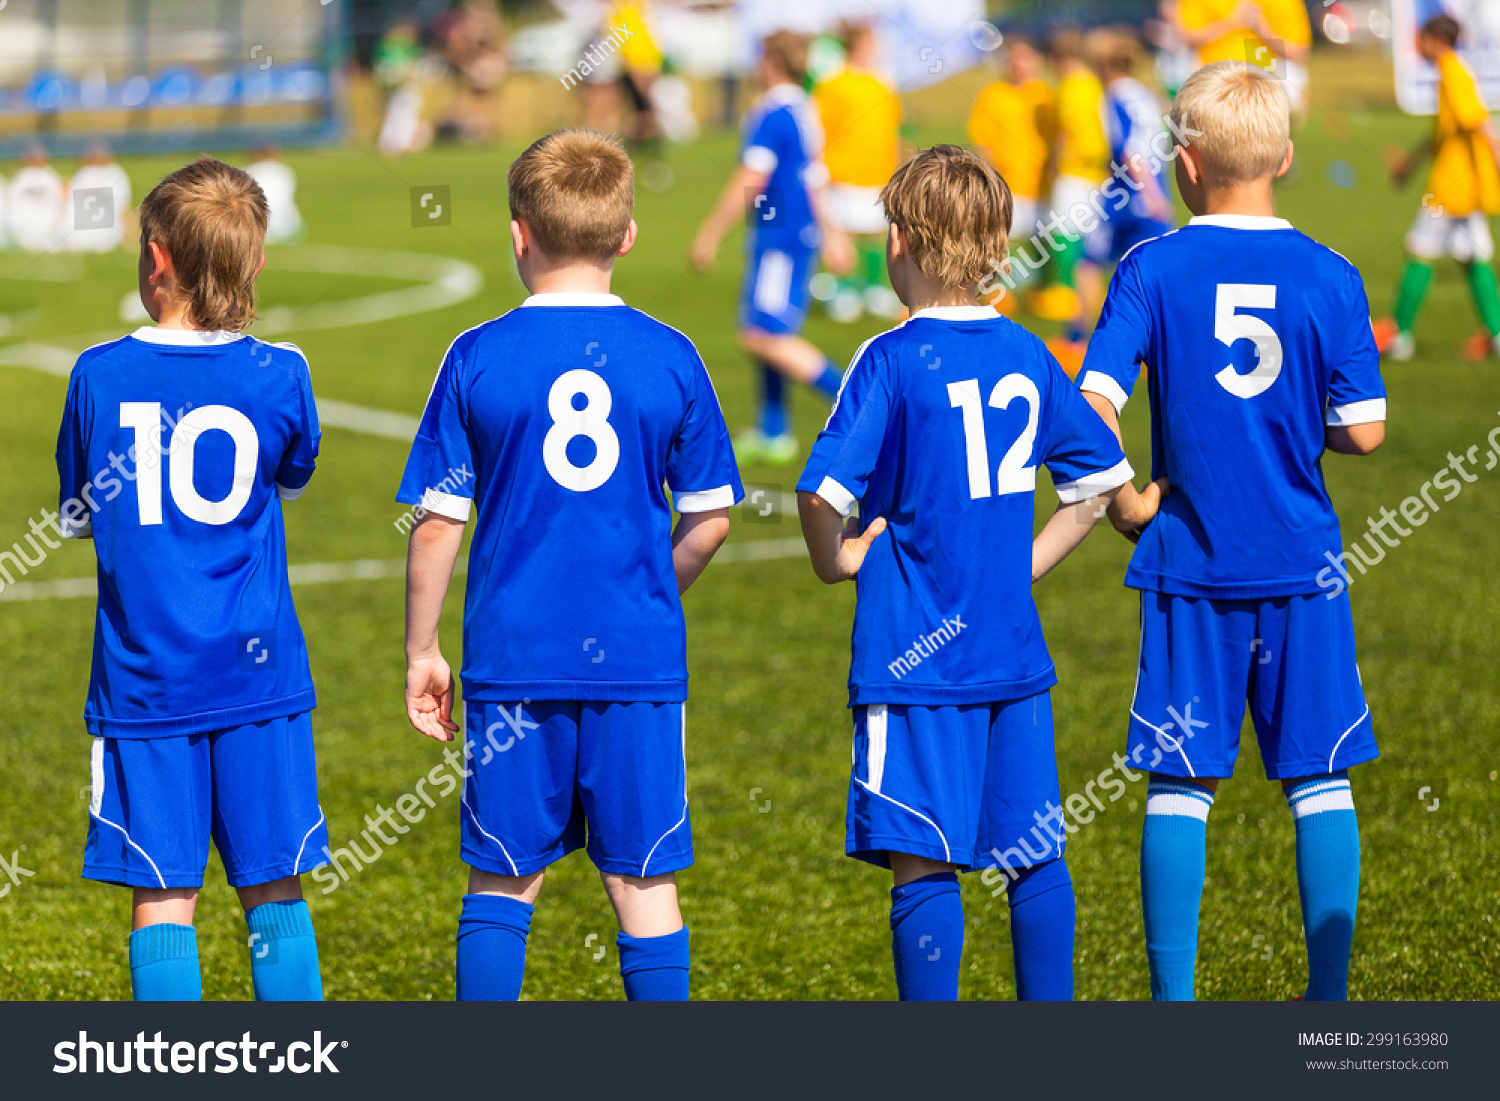 stock photo football soccer match children kids waiting bench